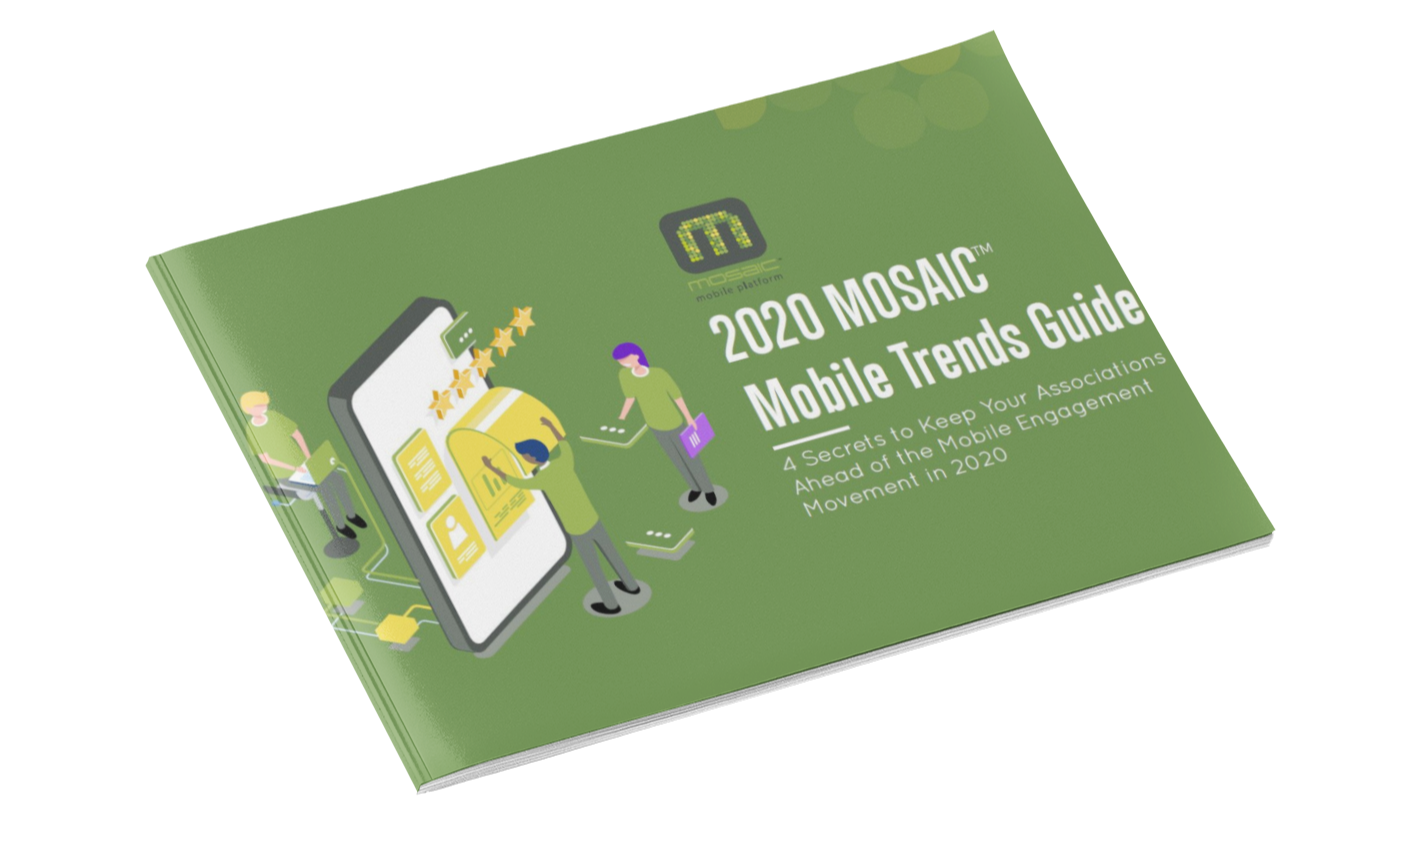 2020 Mobile Trends Landing Page Cover2-1